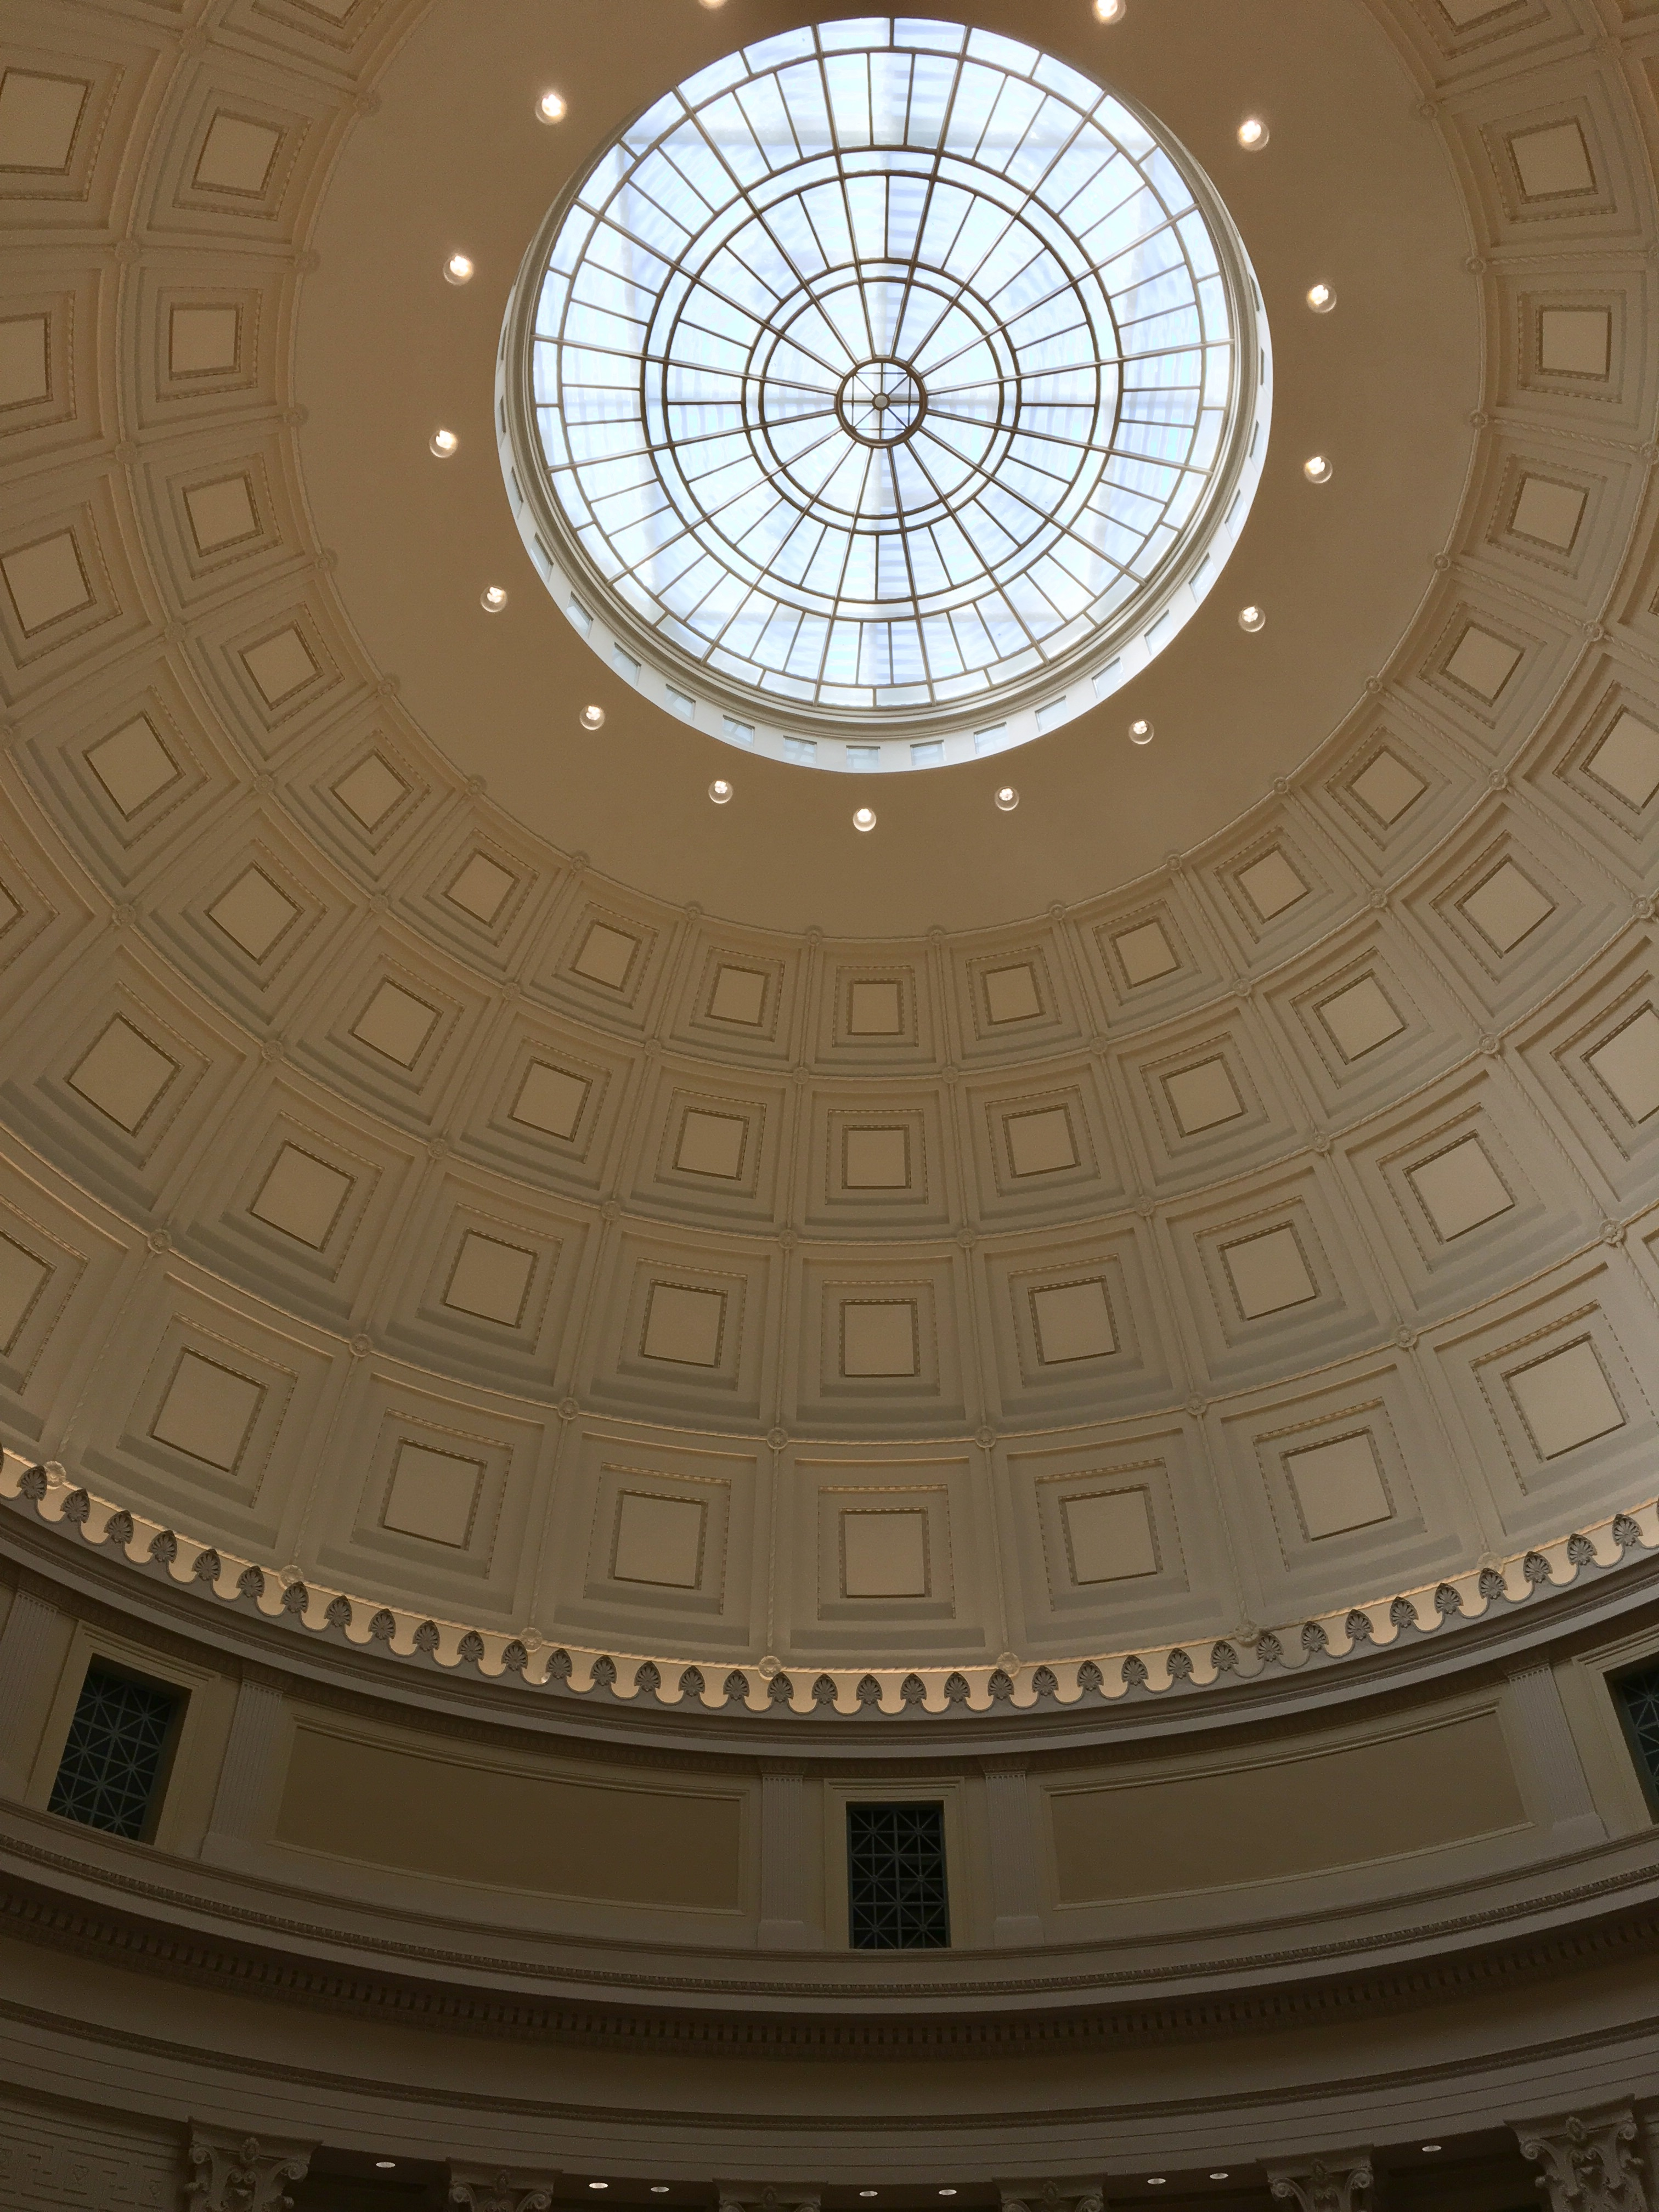 Looking up at the dome. Most of the image is taken up by concentric rings of beige squares; at the very top of the dome, there's a circular clear glass window through which bluish natural light can be seen.